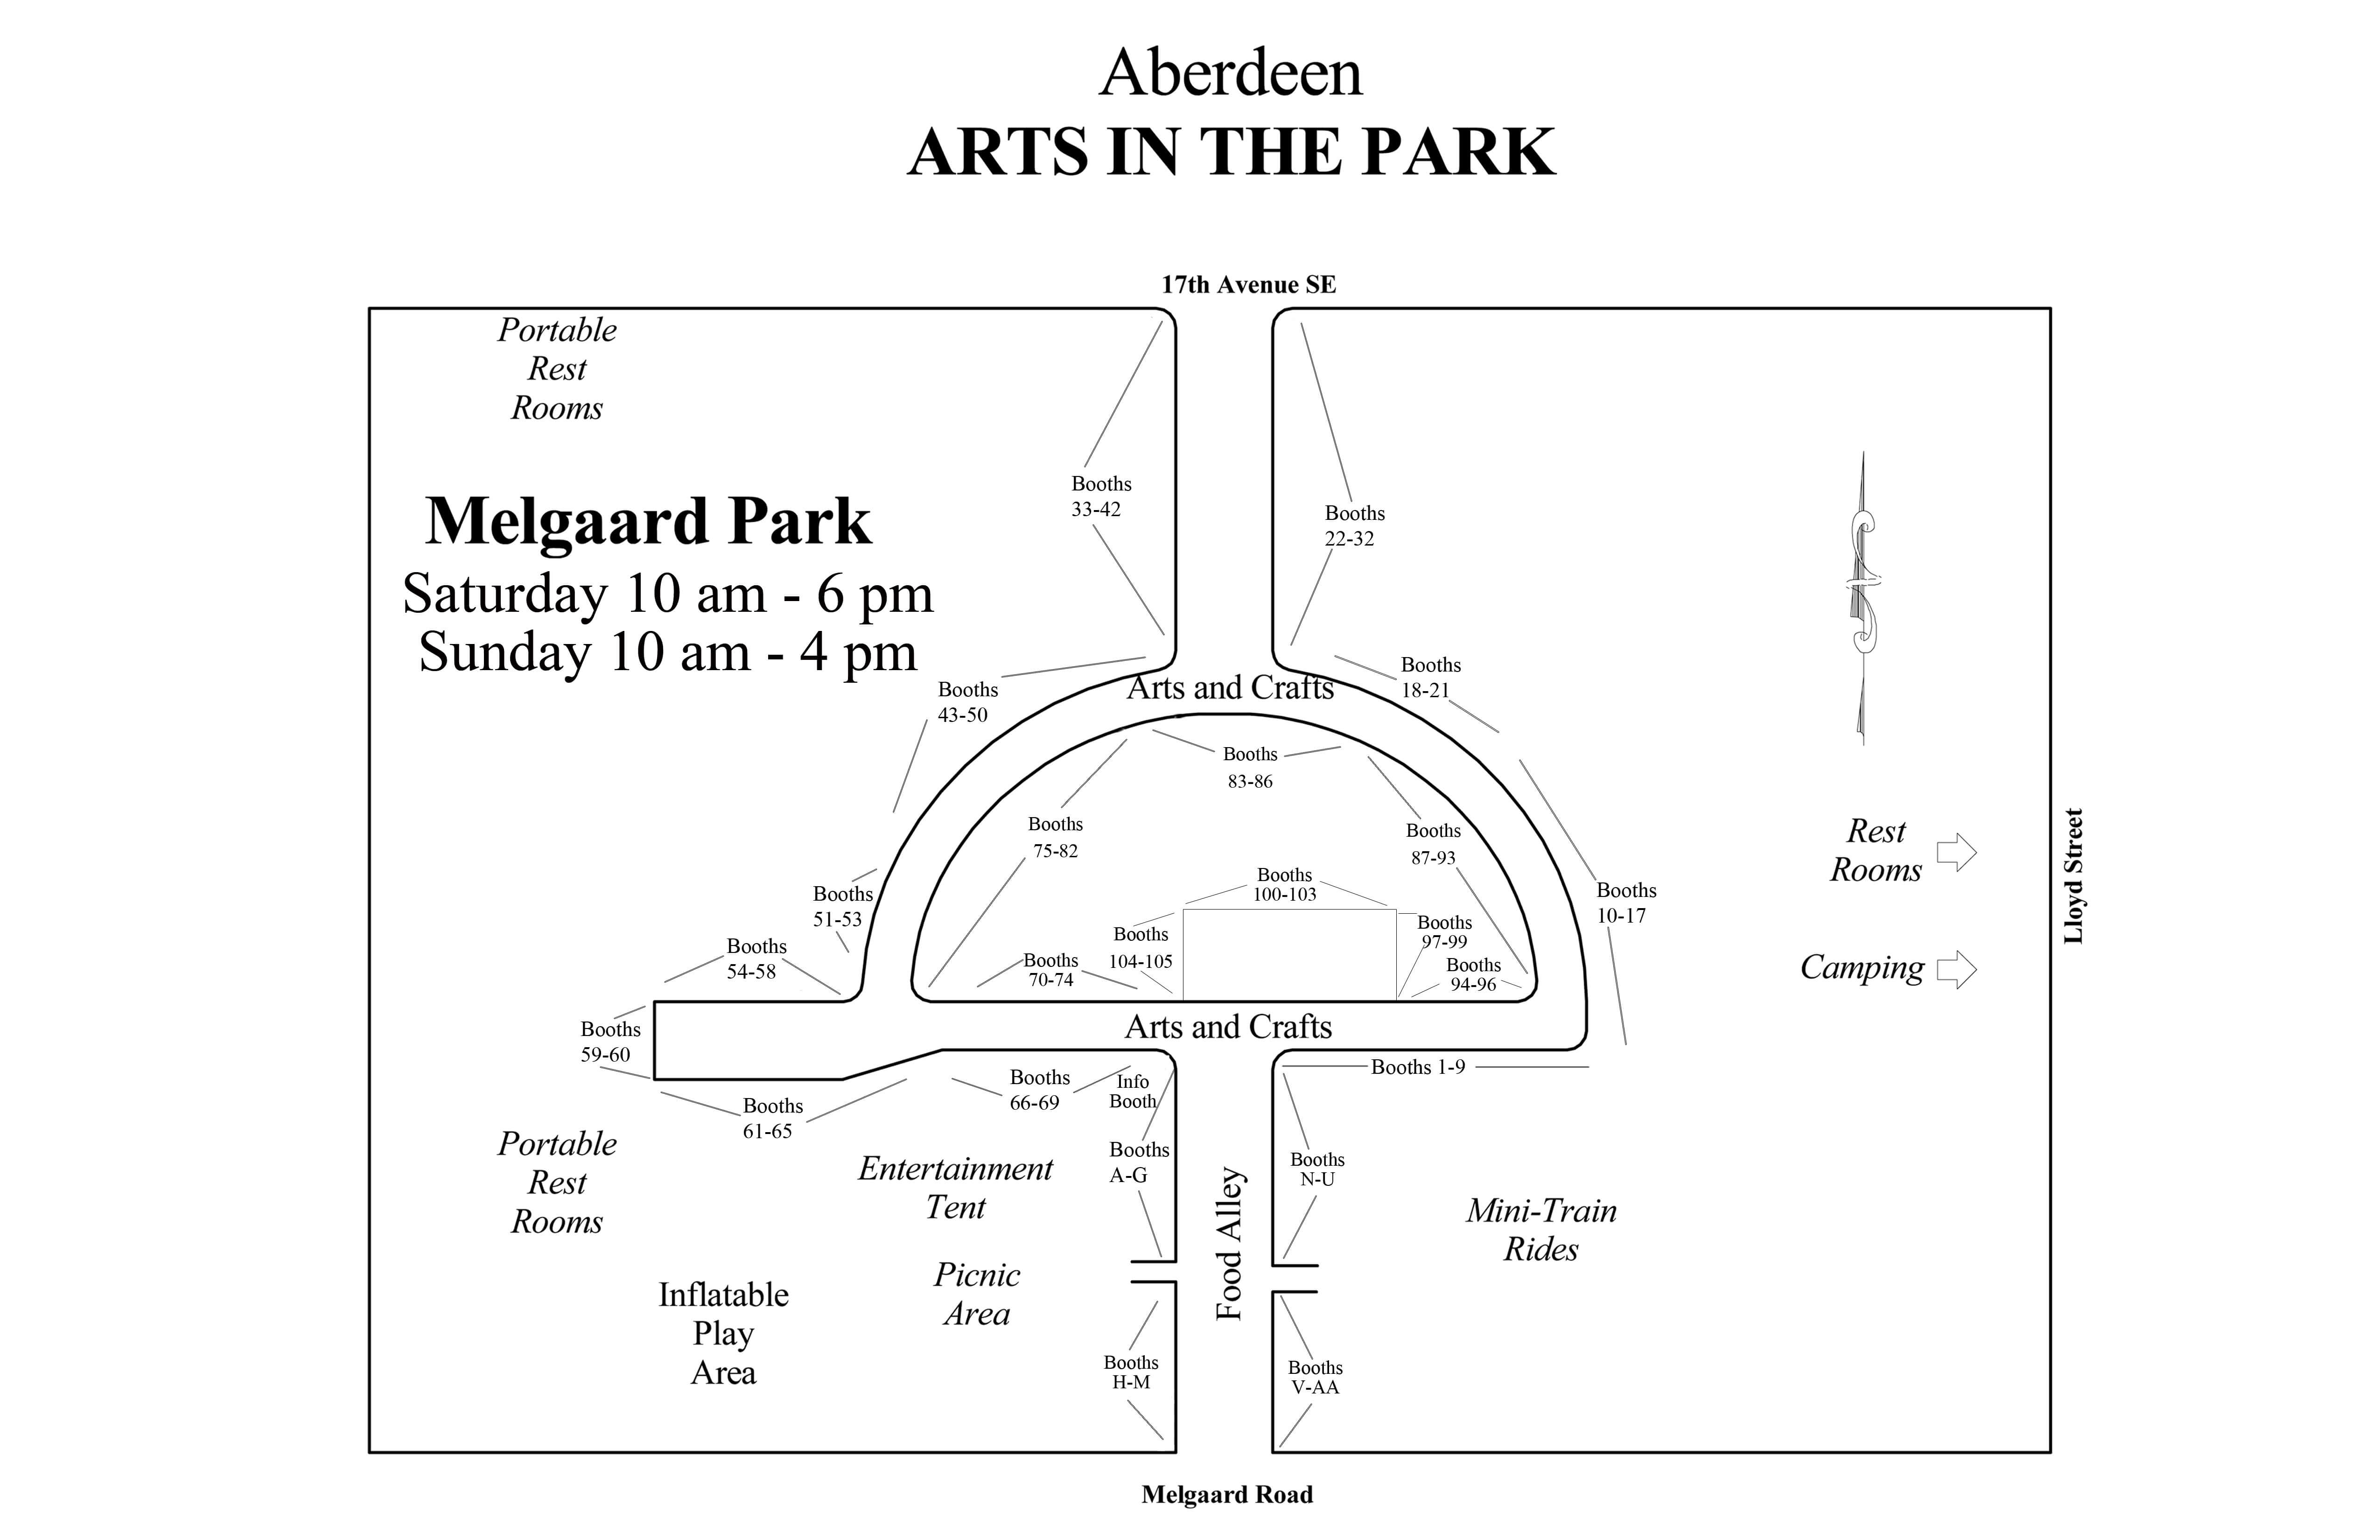 Arts in the Park – Aberdeen Area Arts Council